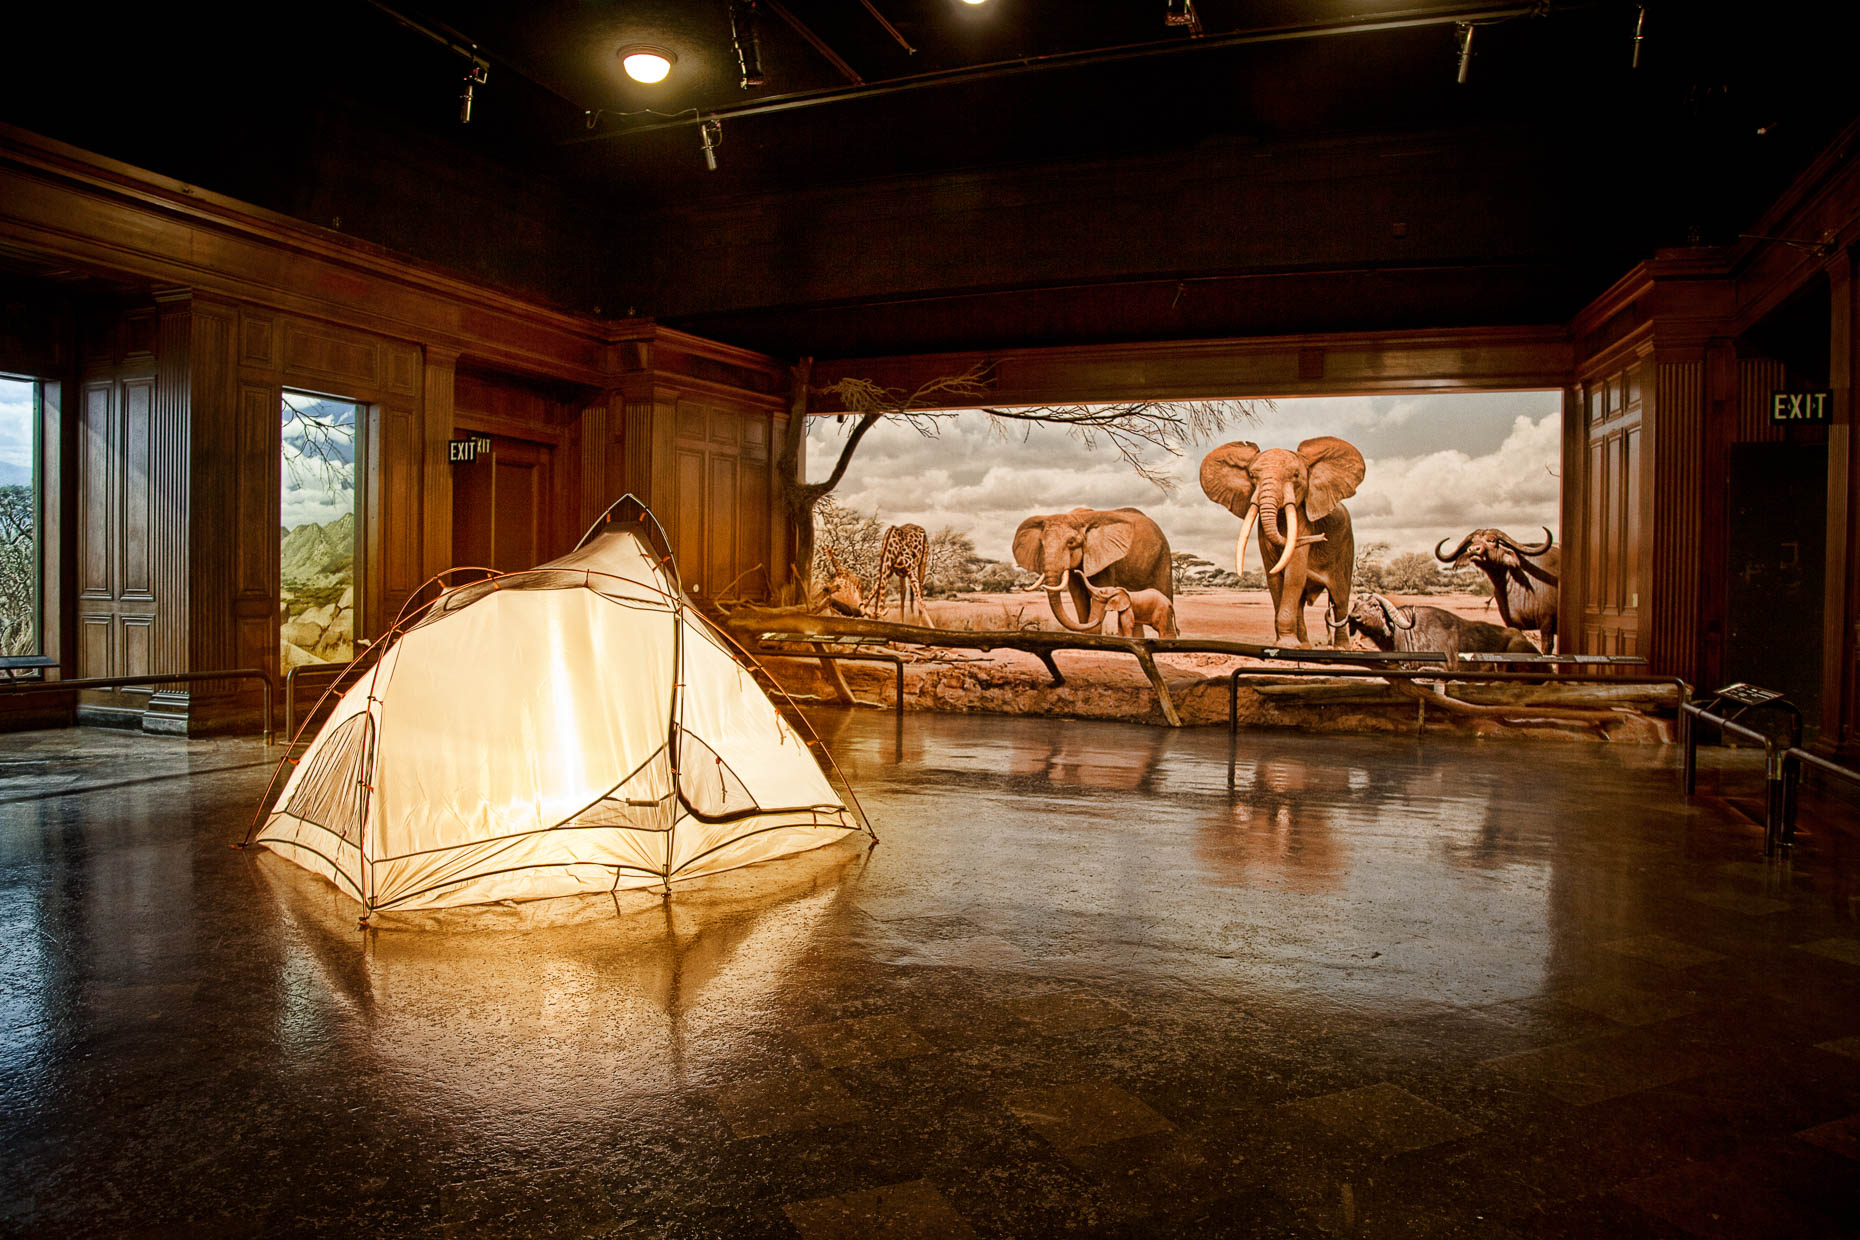 Camping tent in diorama room of Los Angeles County Nautral History Musuem.  Diorama includes elephants and giraffe. David Zaitz